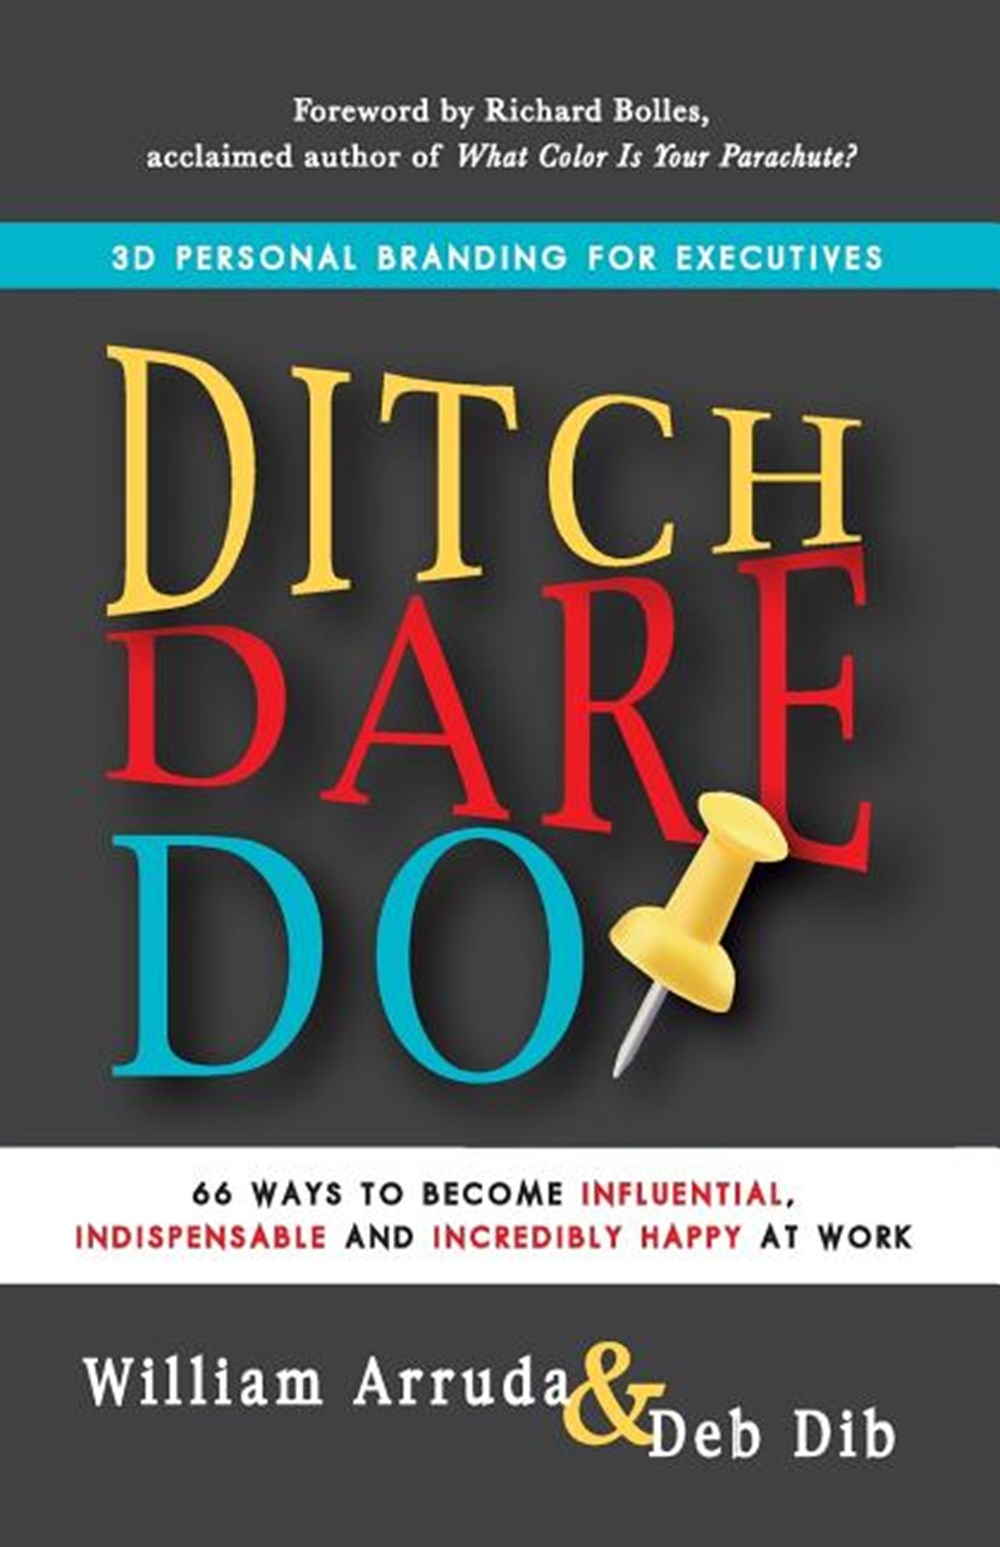 Ditch. Dare. Do! 66 Ways to Become Influential, Indispensable, and Incredibly Happy at Work